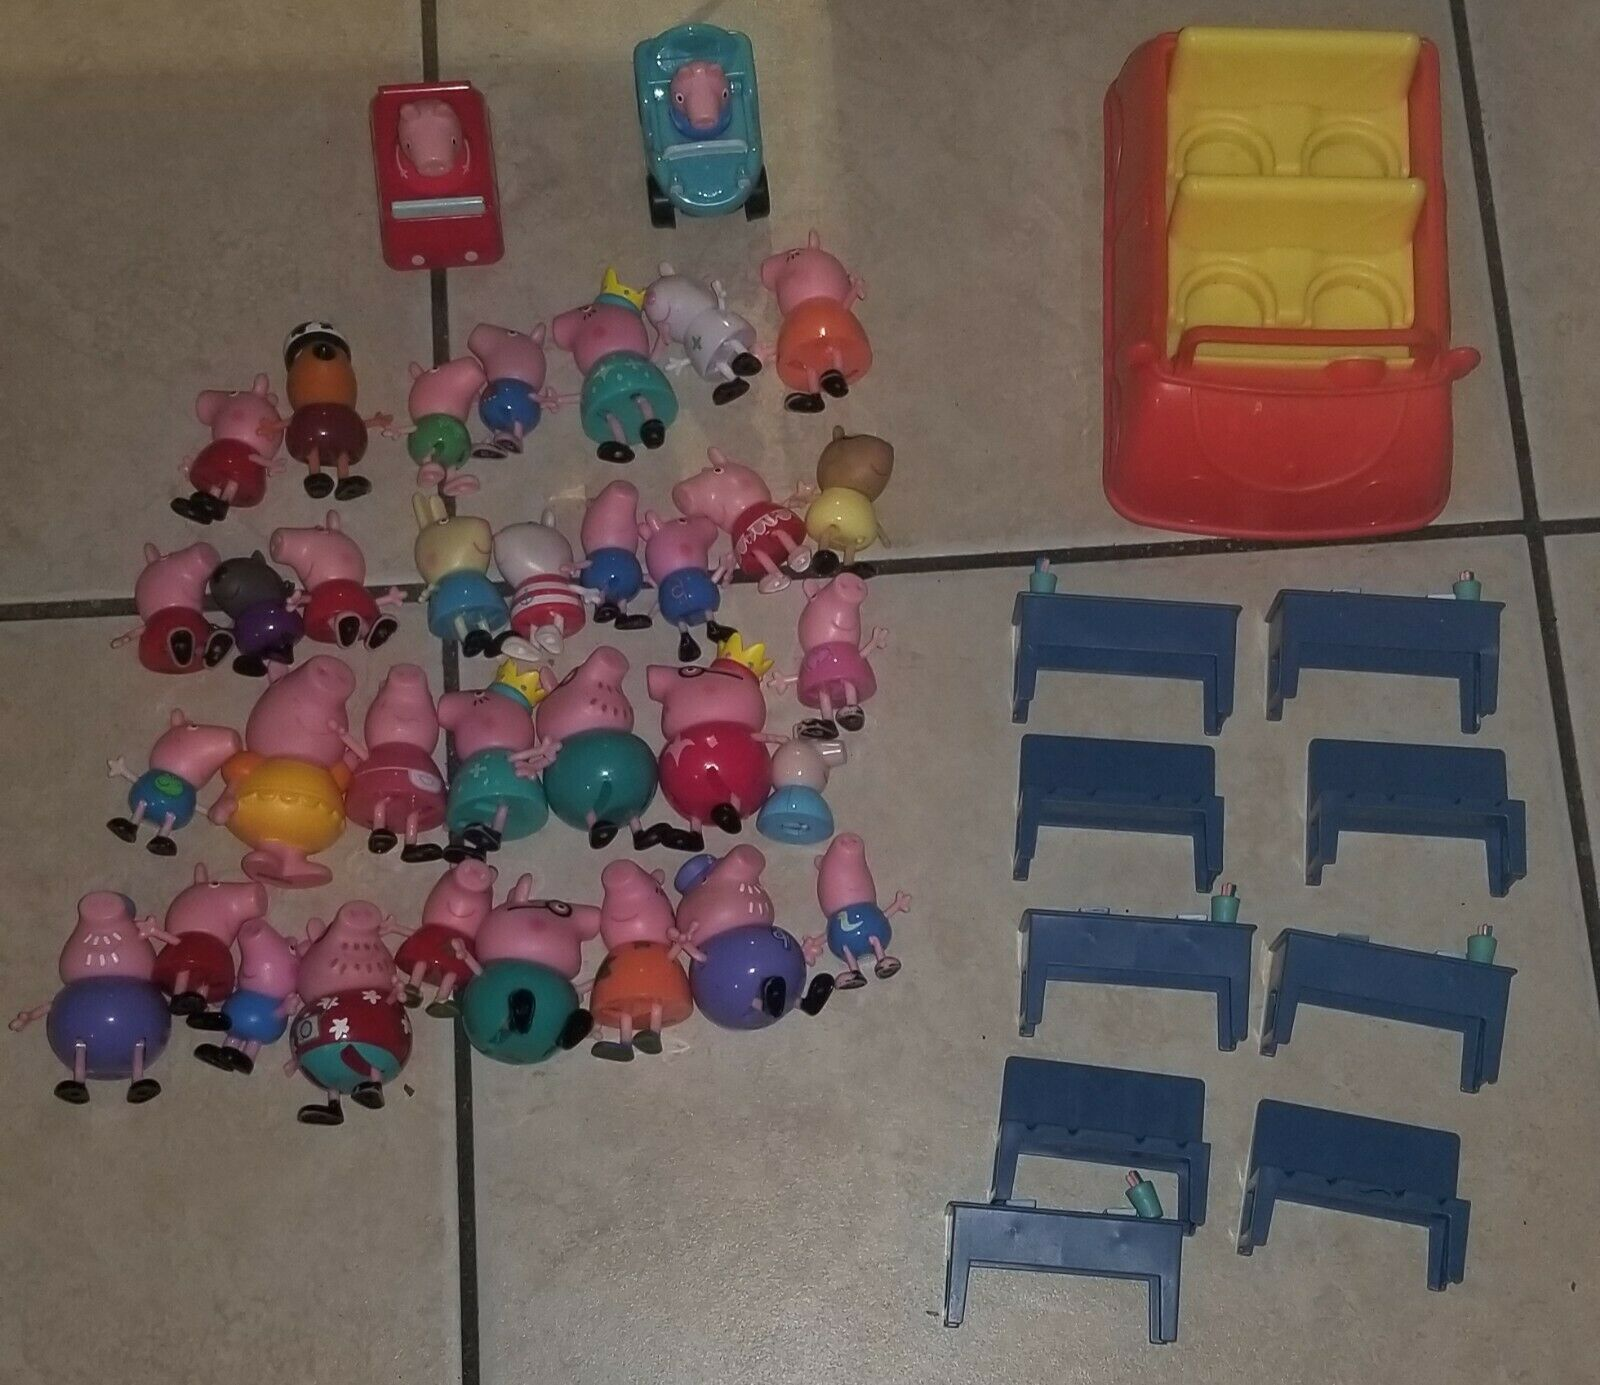 Huge Peppa Pig Family & Friends Lot Figures, Accessories, Furniture, Classroom